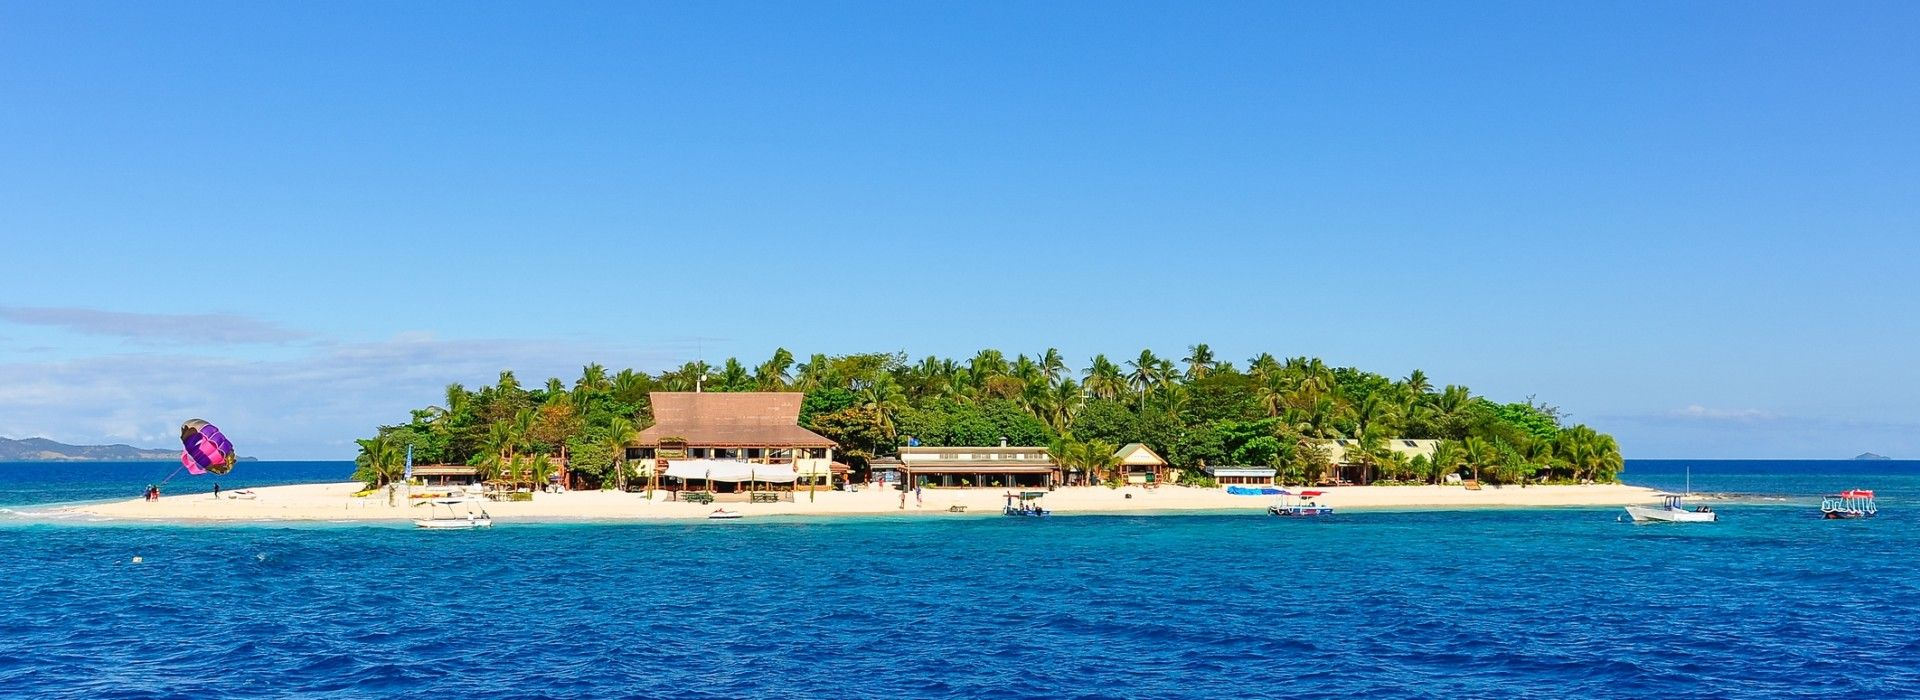 Sightseeing Tours in Oceania